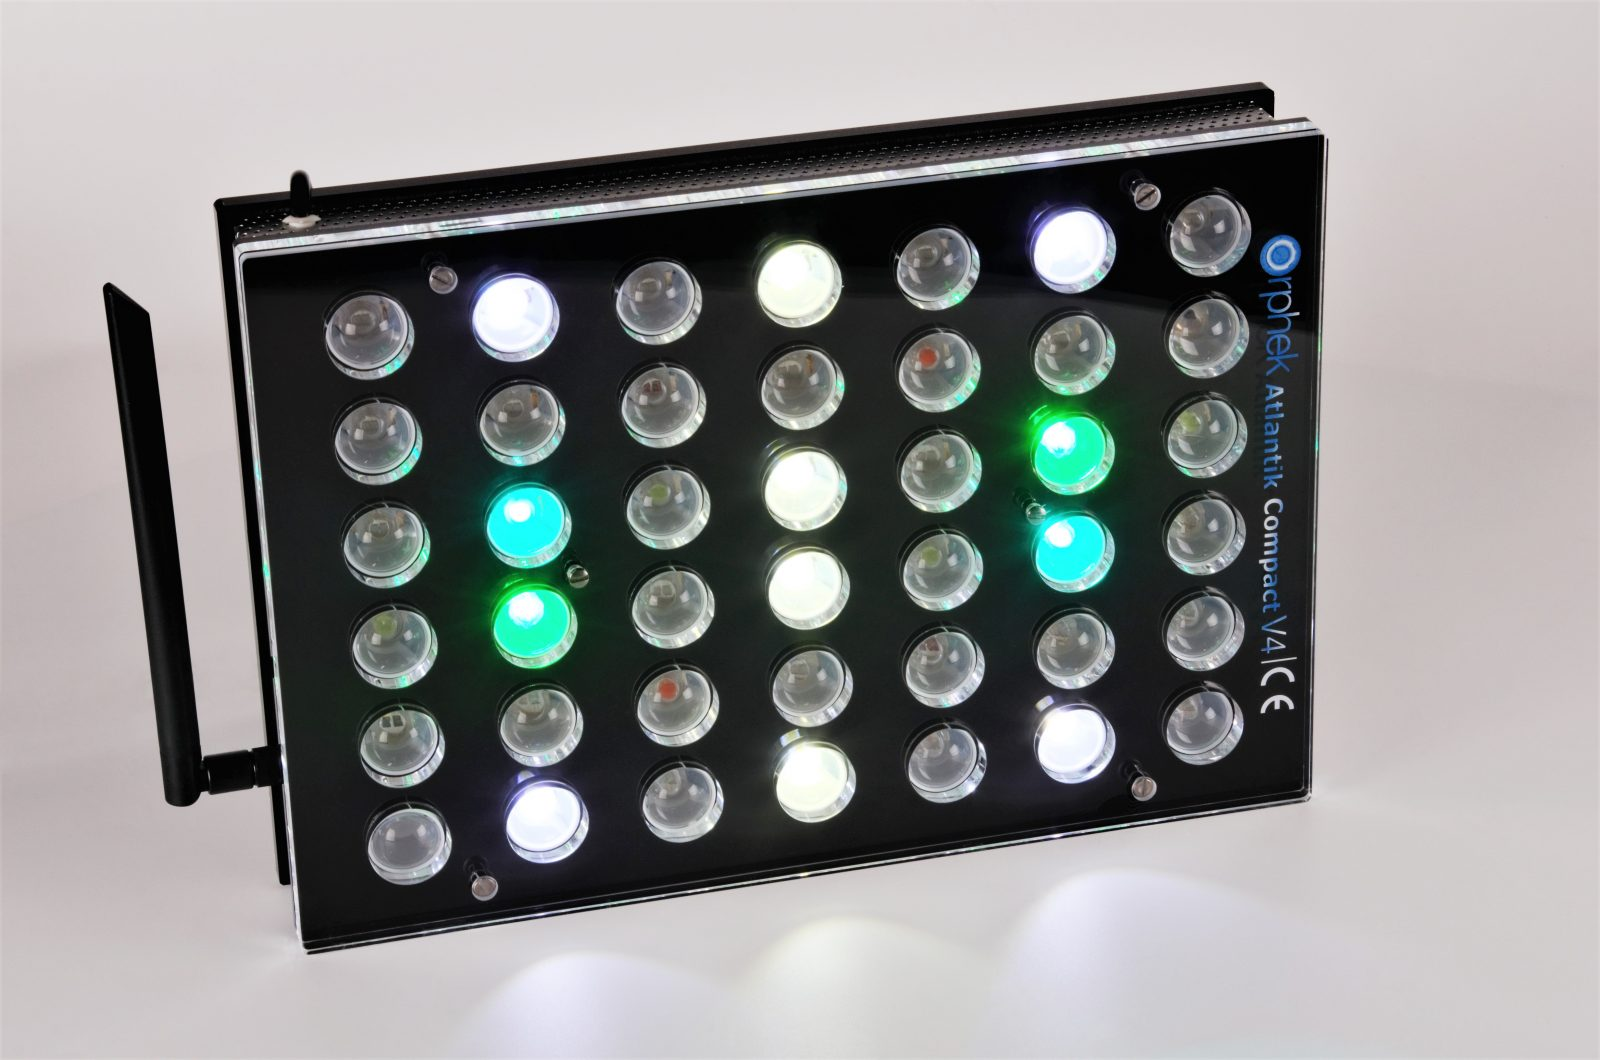 Orphek-Aquarium-LED-Lighting-Atlantik -Compact-V4-light -on - channel 1